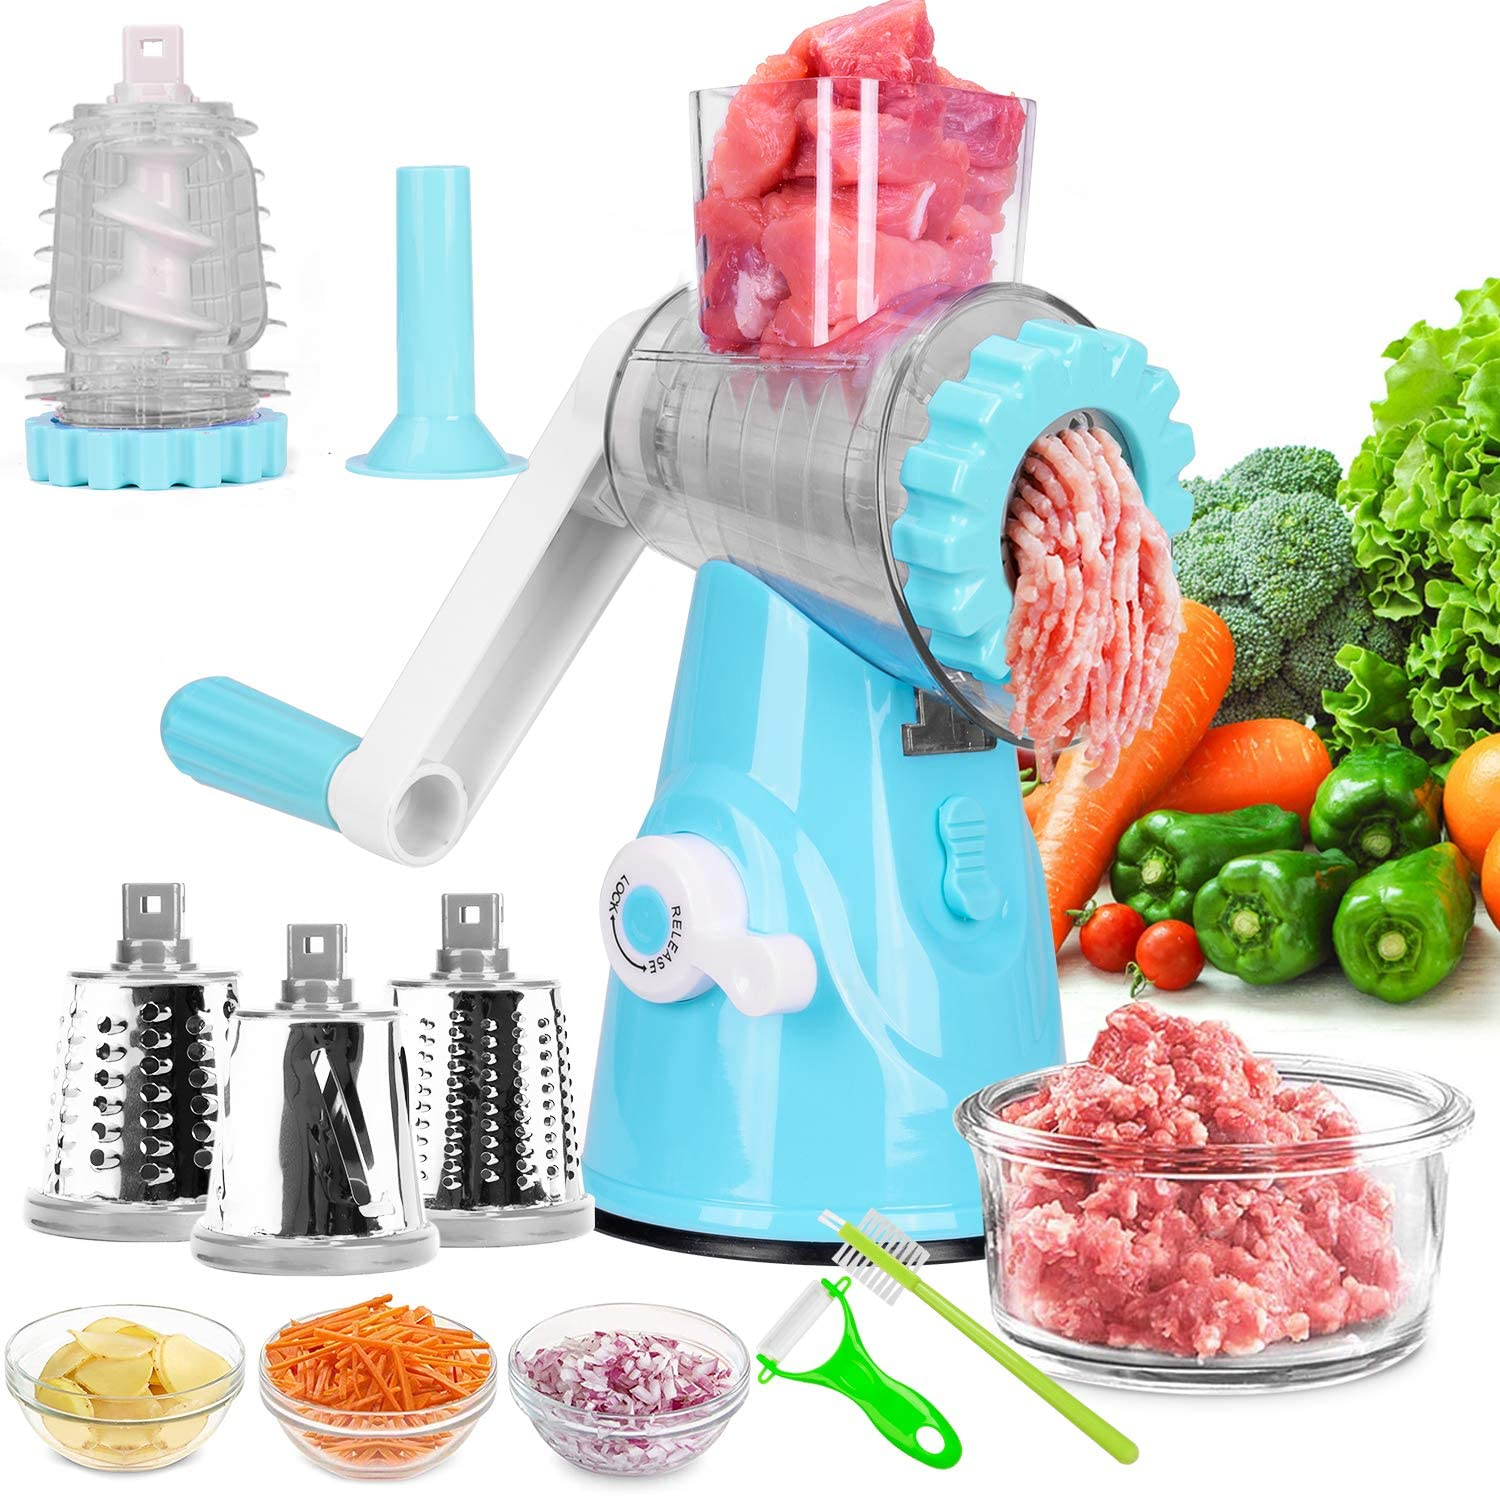 Meat Grinder, Rotary Cheese Grater, Kitchen Multi-Function Meat Grinder with Strong Suction Base, 4 Interchangeable Blades for Ground Meat, Sausage, Vegetables Fruit Slice, Shred, Nut Grind (Blue)